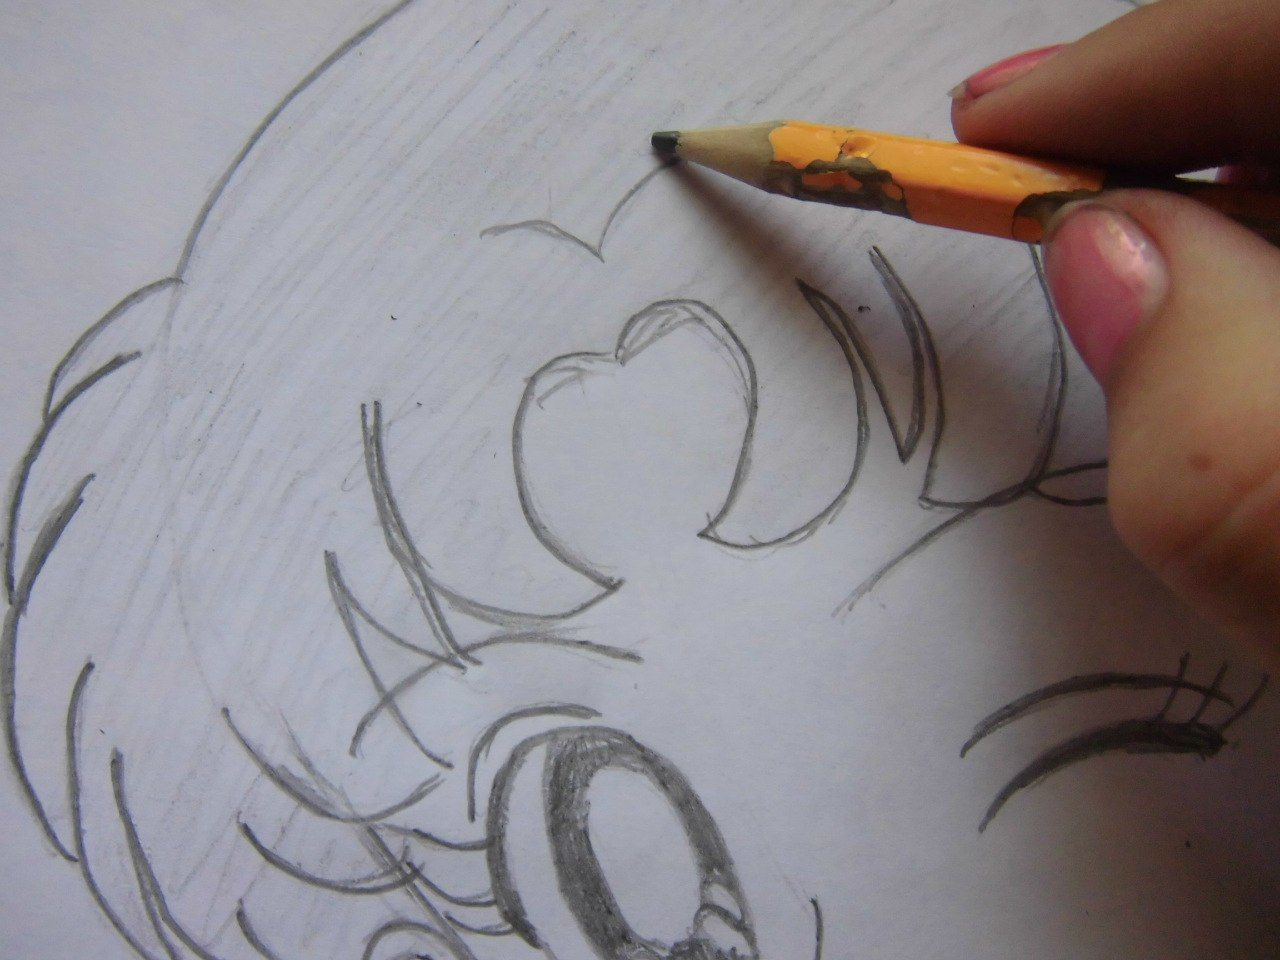 How to draw Alois Trancy from Black Butler with a pencil step by step 6